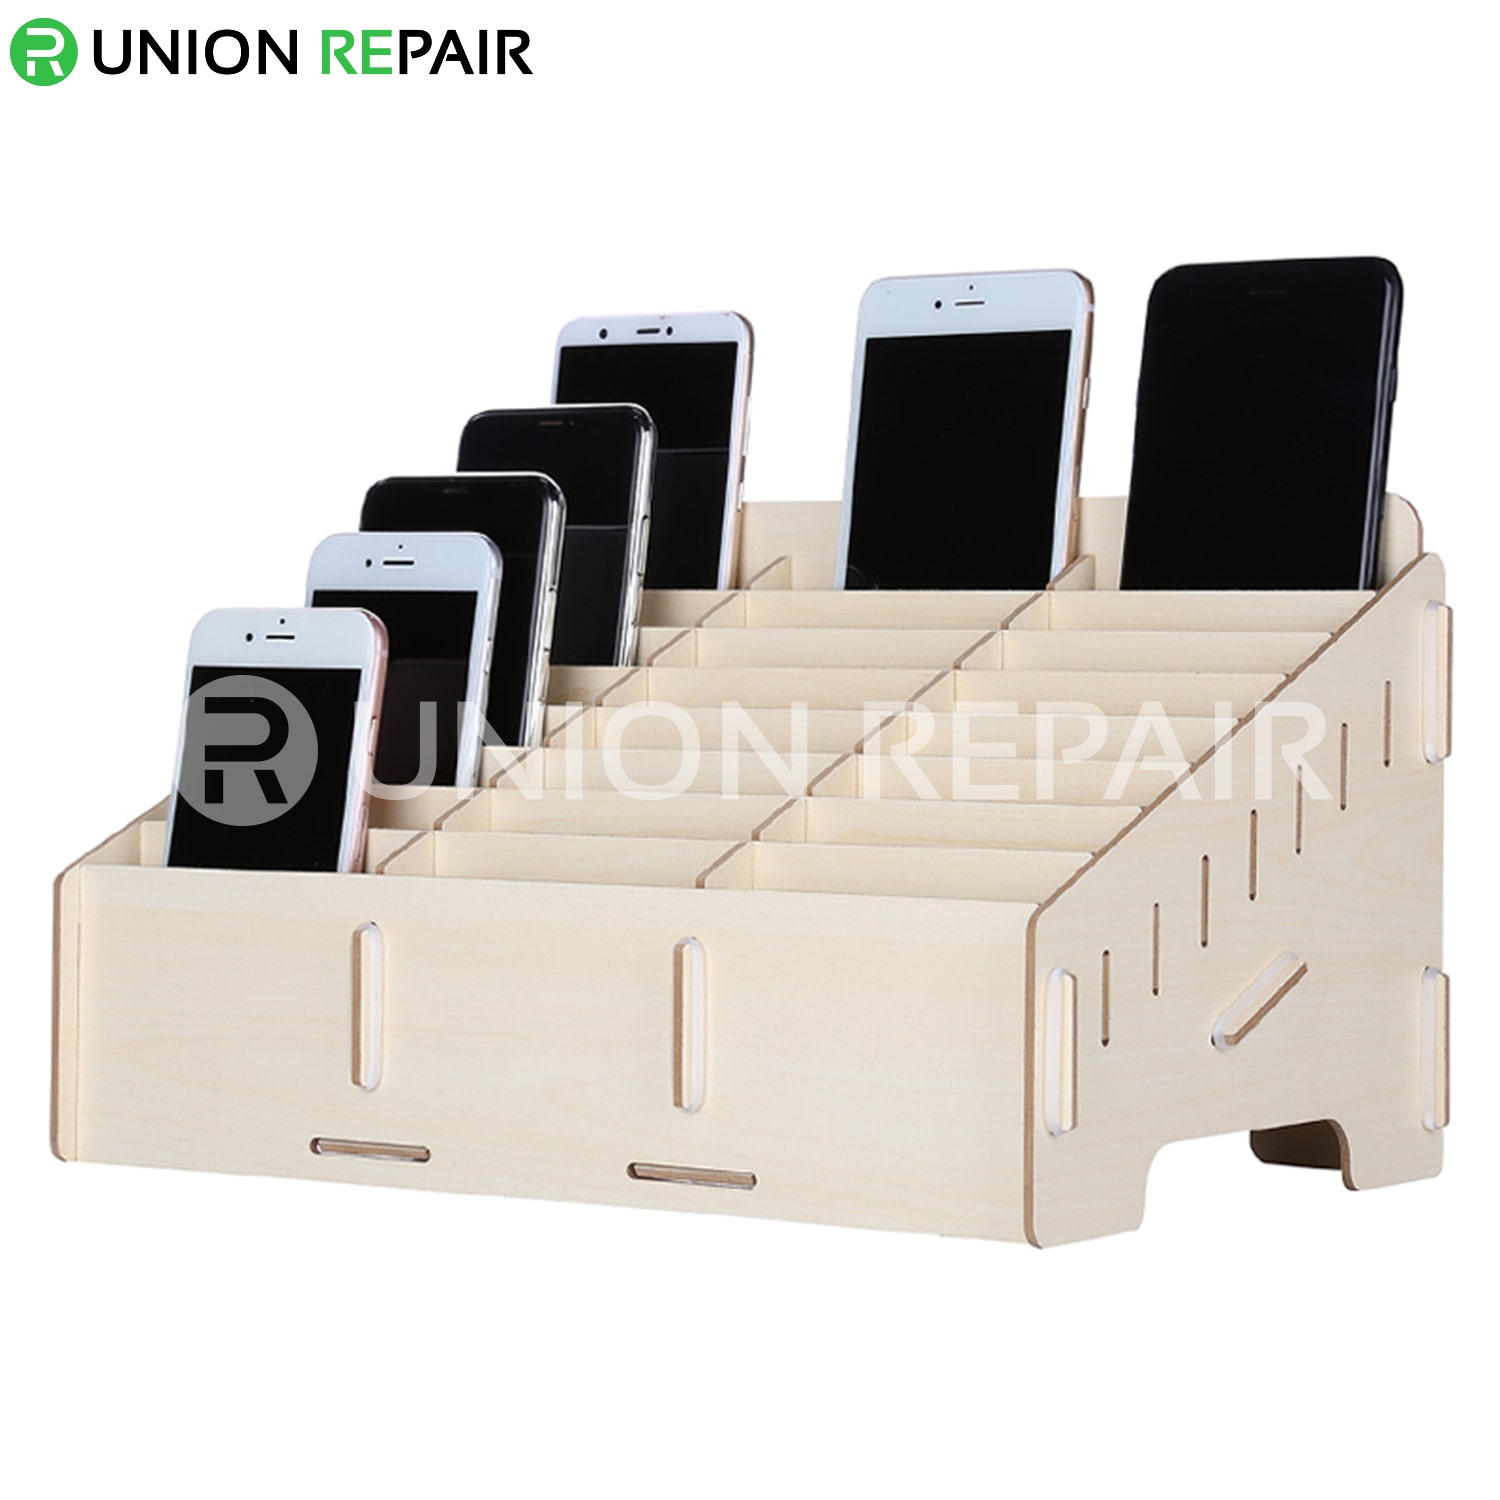 The Woody Mobile Phone Repair Storage Box, Size: 24 box